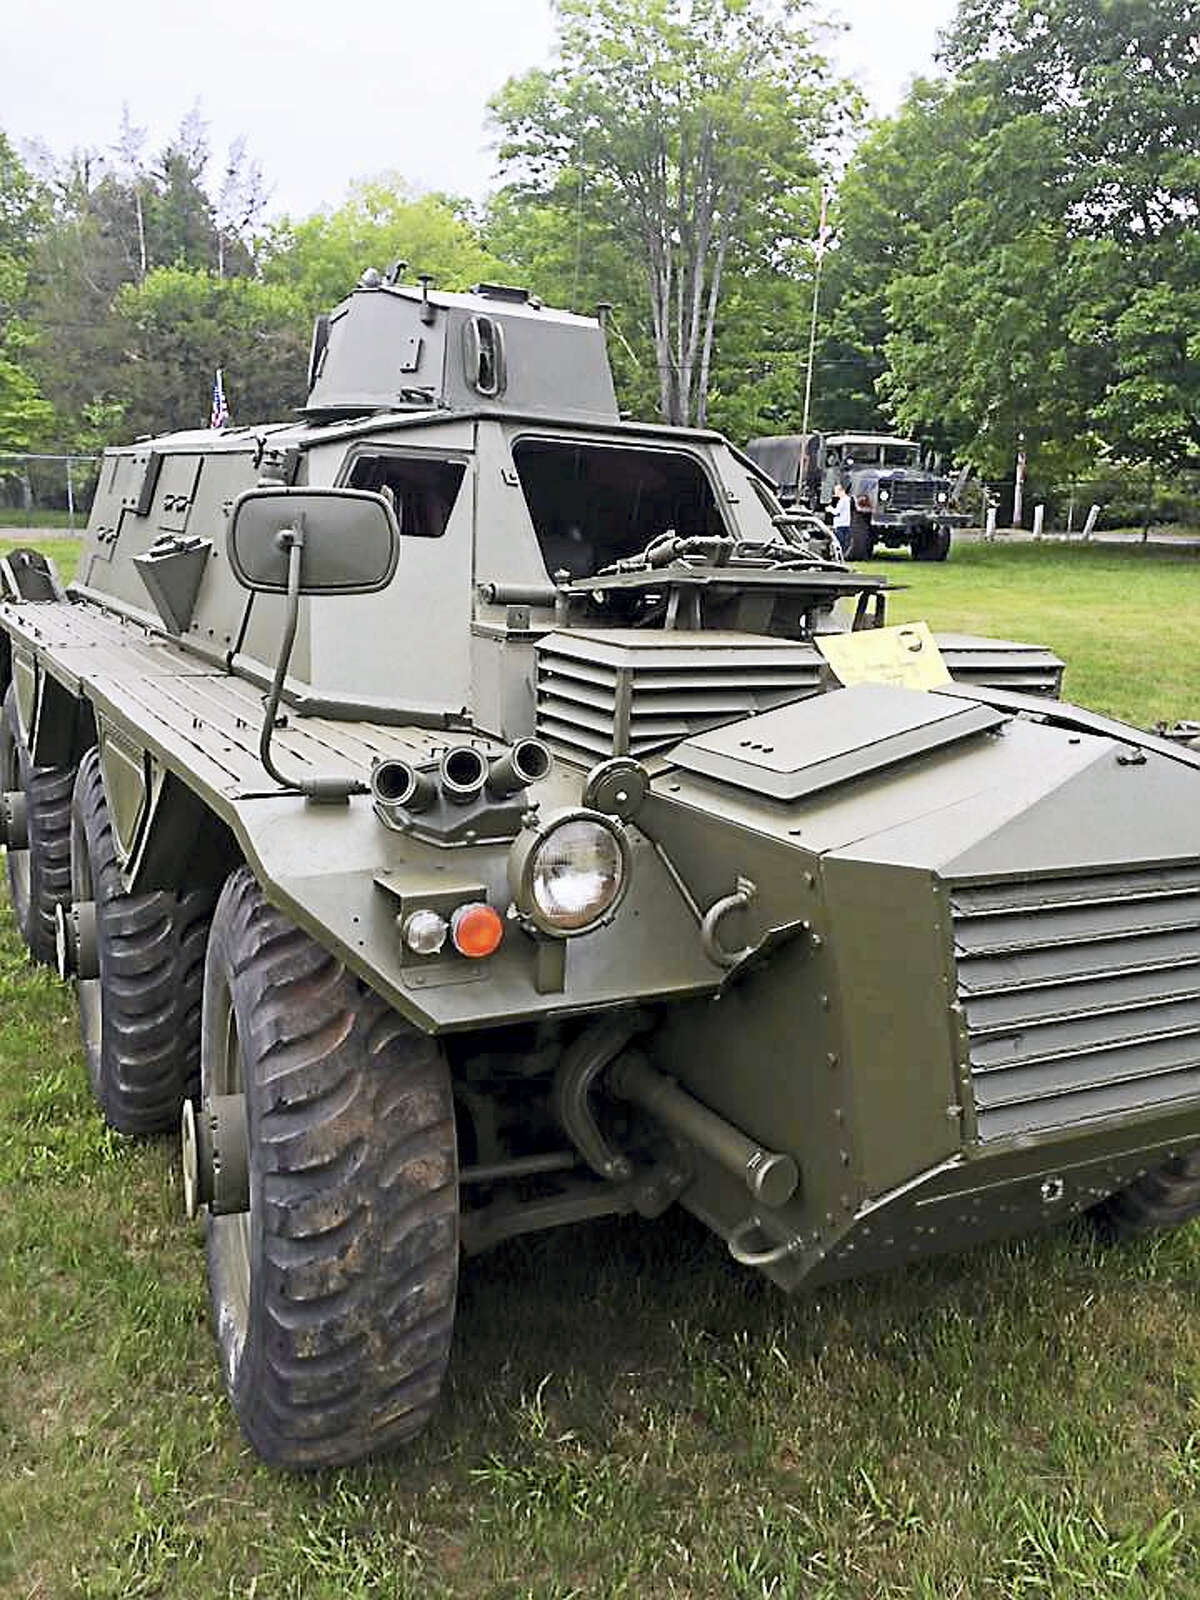 The 40th annual Connecticut Military Vehicle Collectors show and flea market will take place this weekend at the Chester Fairgrounds on Kirtland Terrace.